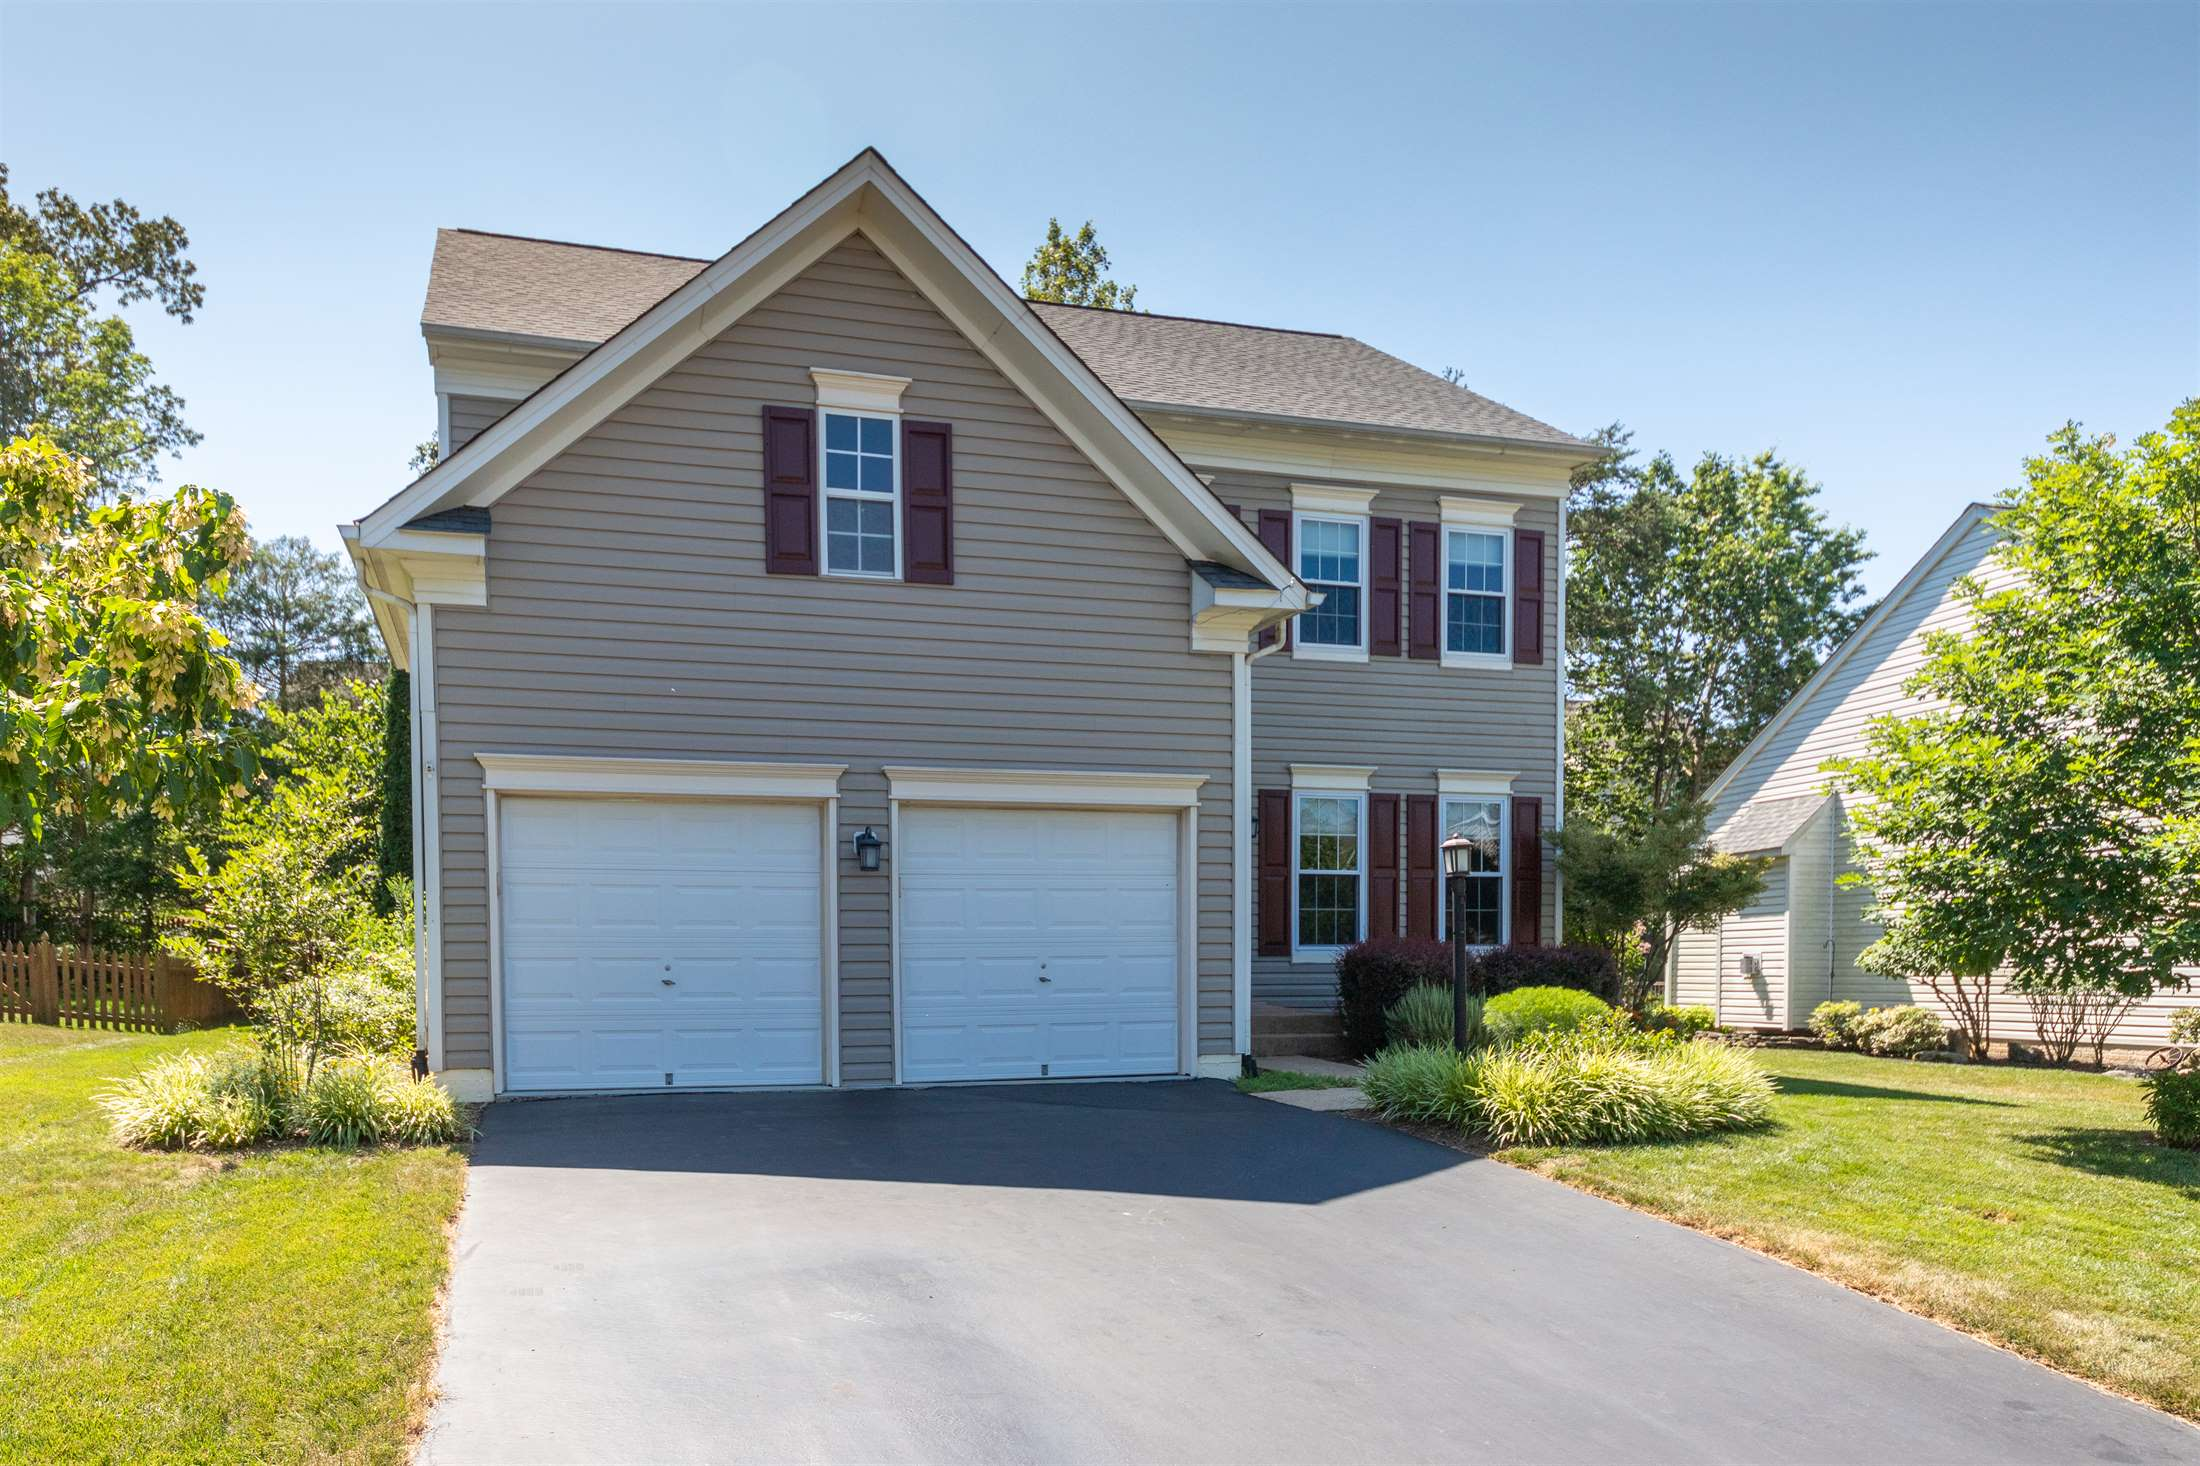 12607 Moray Firth Way, Bristow, VA 20136